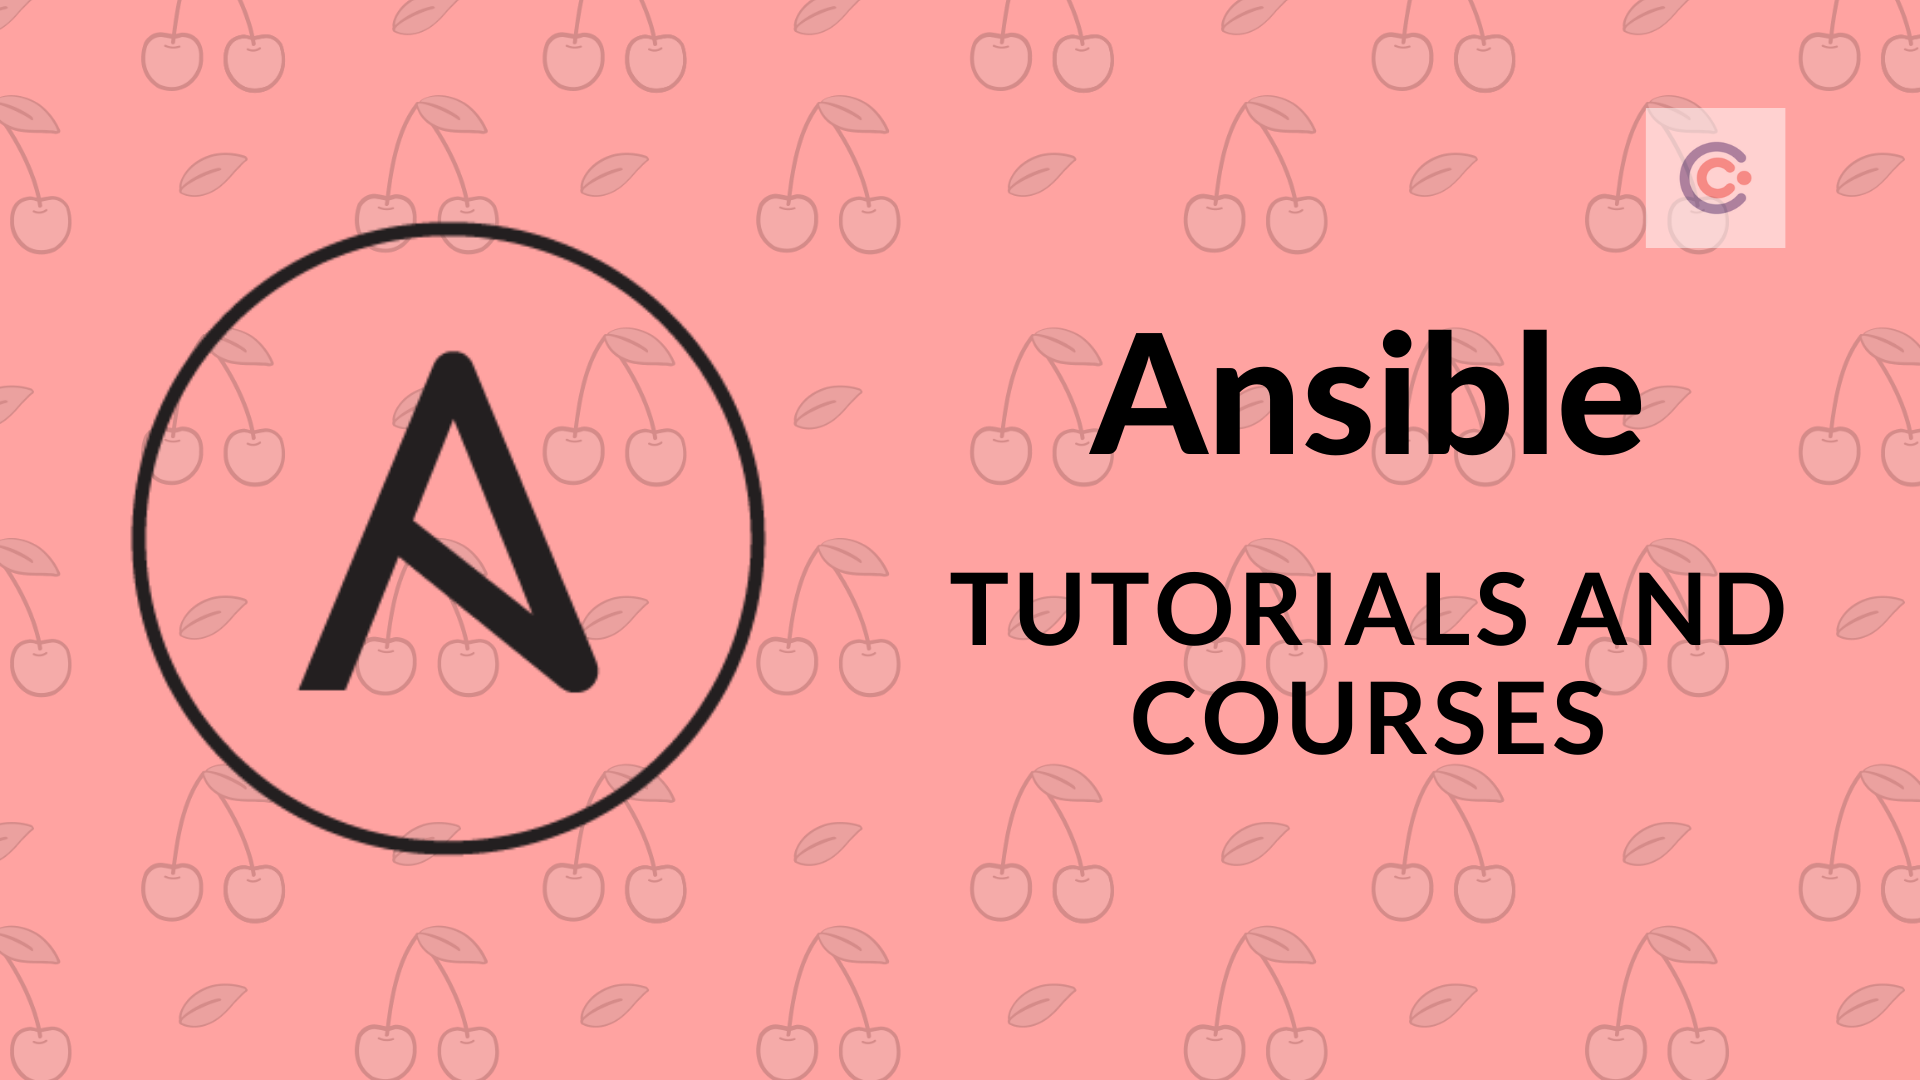 10 Best Ansible Tutorials and Courses - Learn Ansible Online